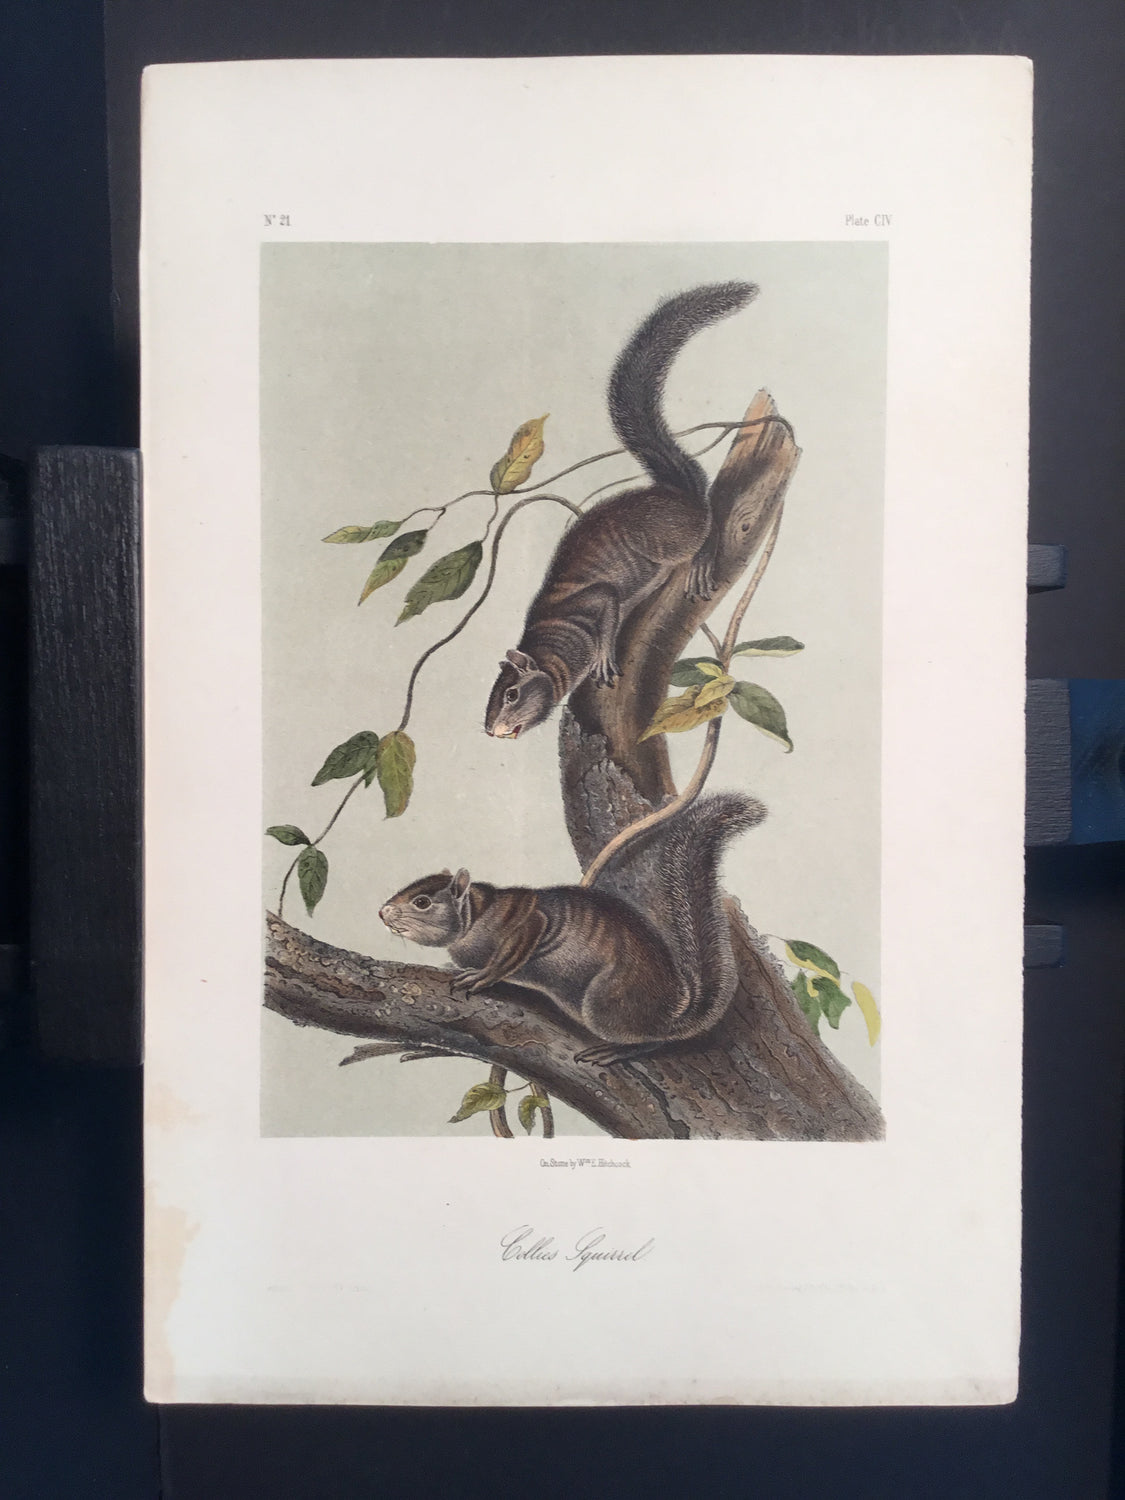 Lord-Hopkins Collection - Collies Squirrels